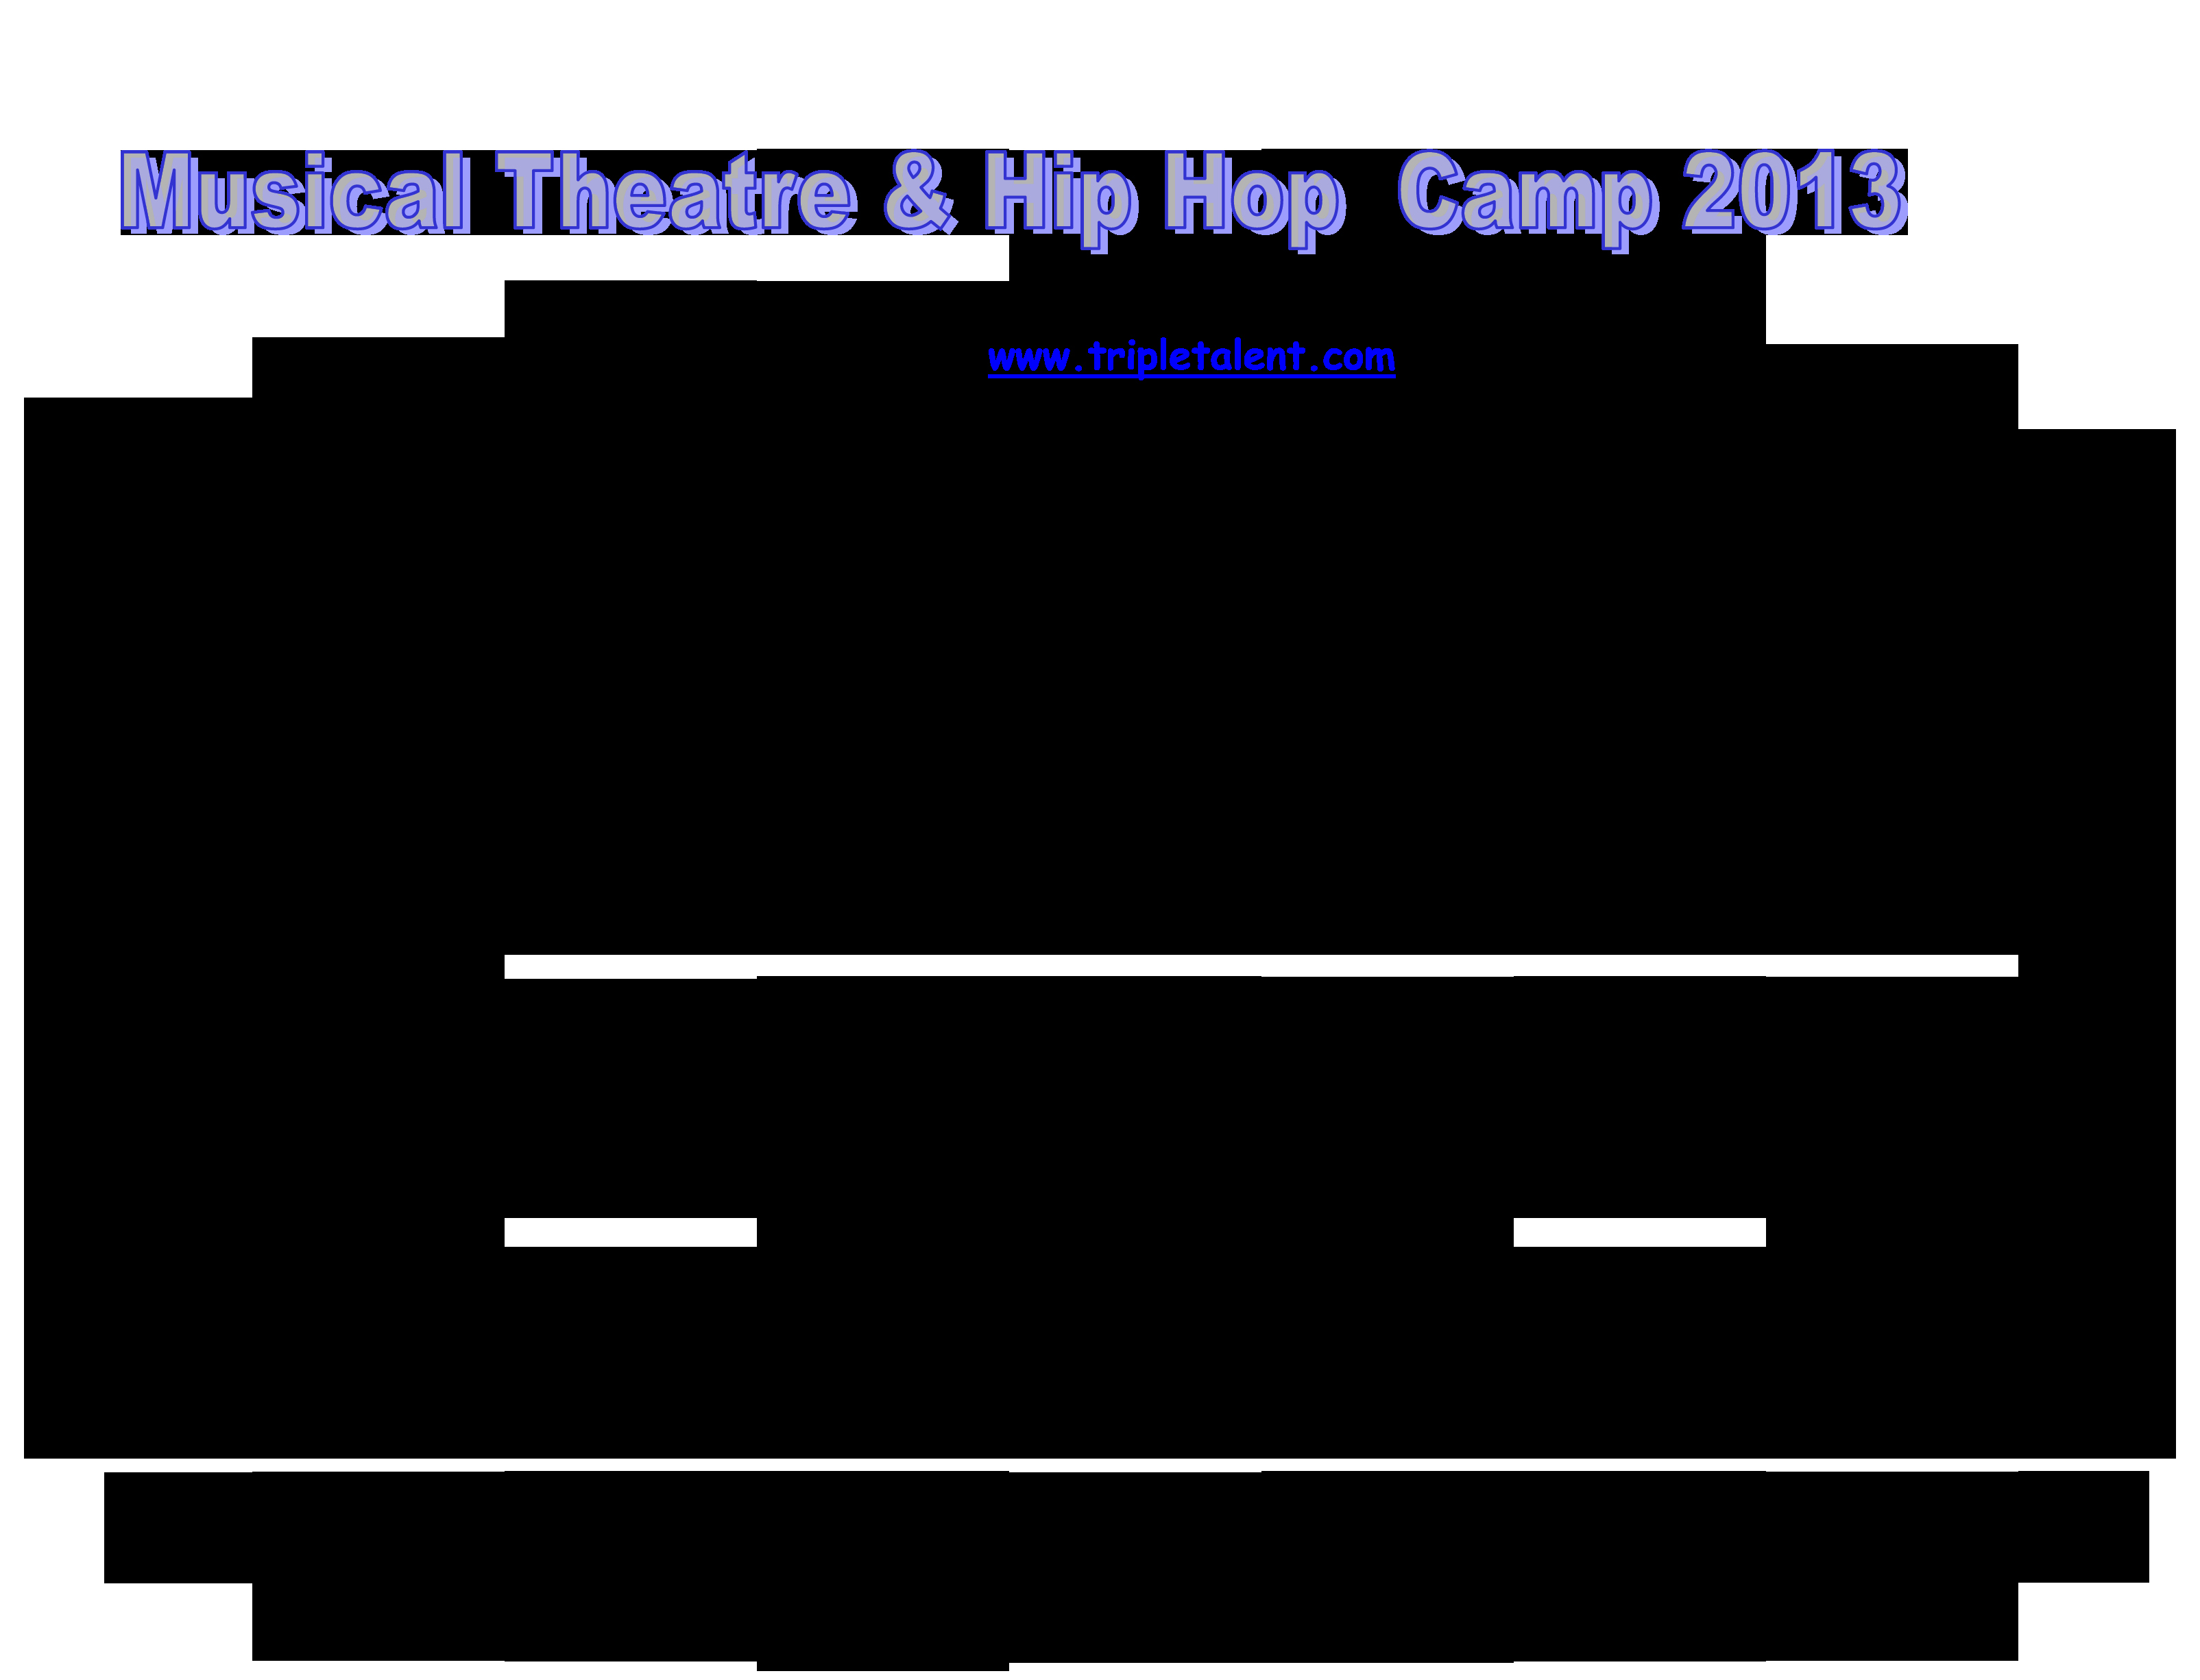 Summer Camp Schedule Templates Elegant Index Of Cdn 29 2002 48